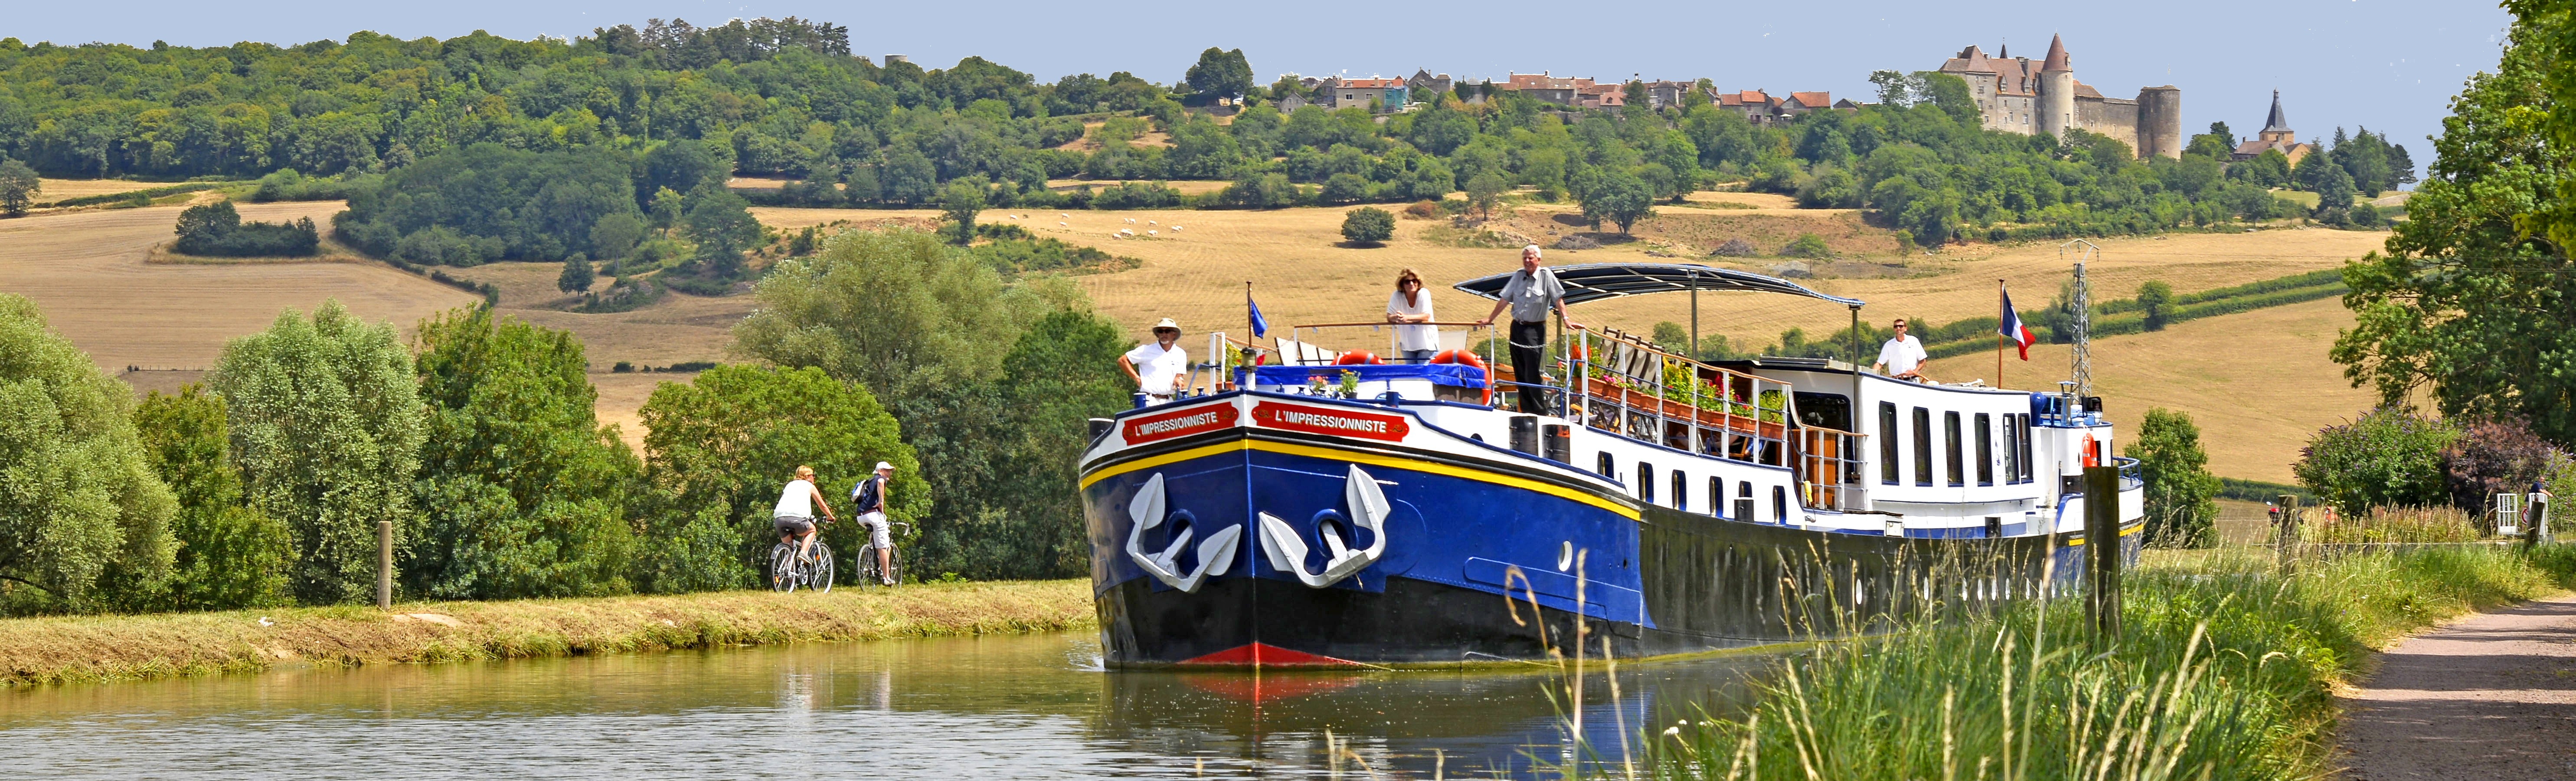 Barge Cruises In France and Europe: Photo Gallery for Barge L'Impressionniste